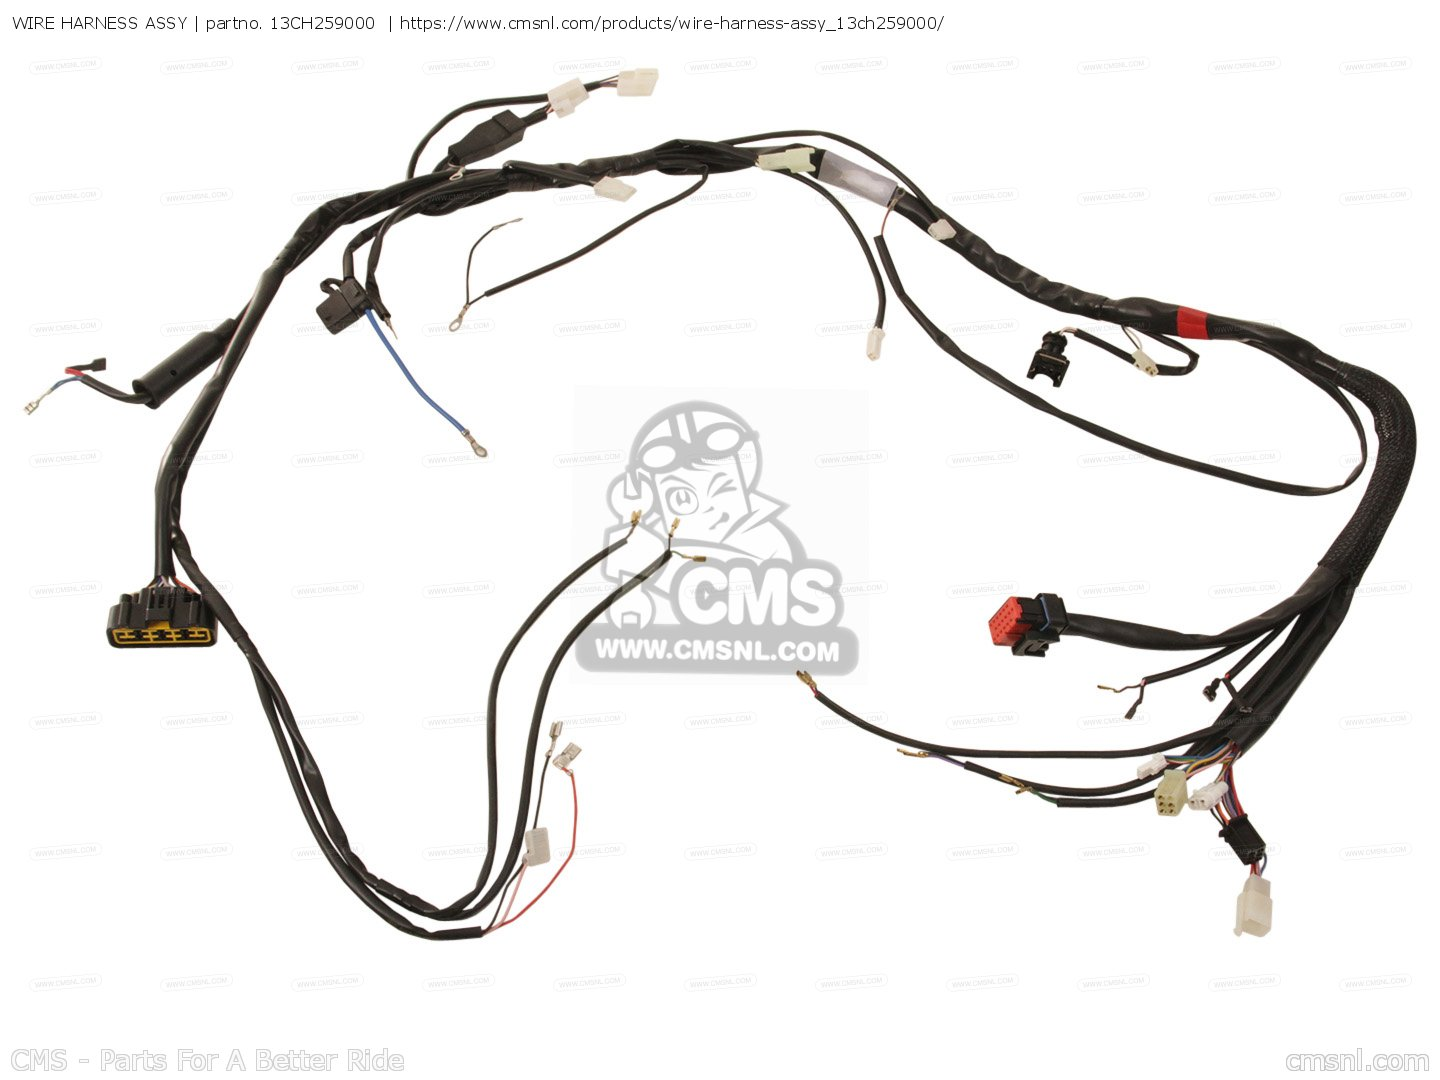 Wire Harness Assy For Dt50r 13c9 Europe 1j13c 300e1